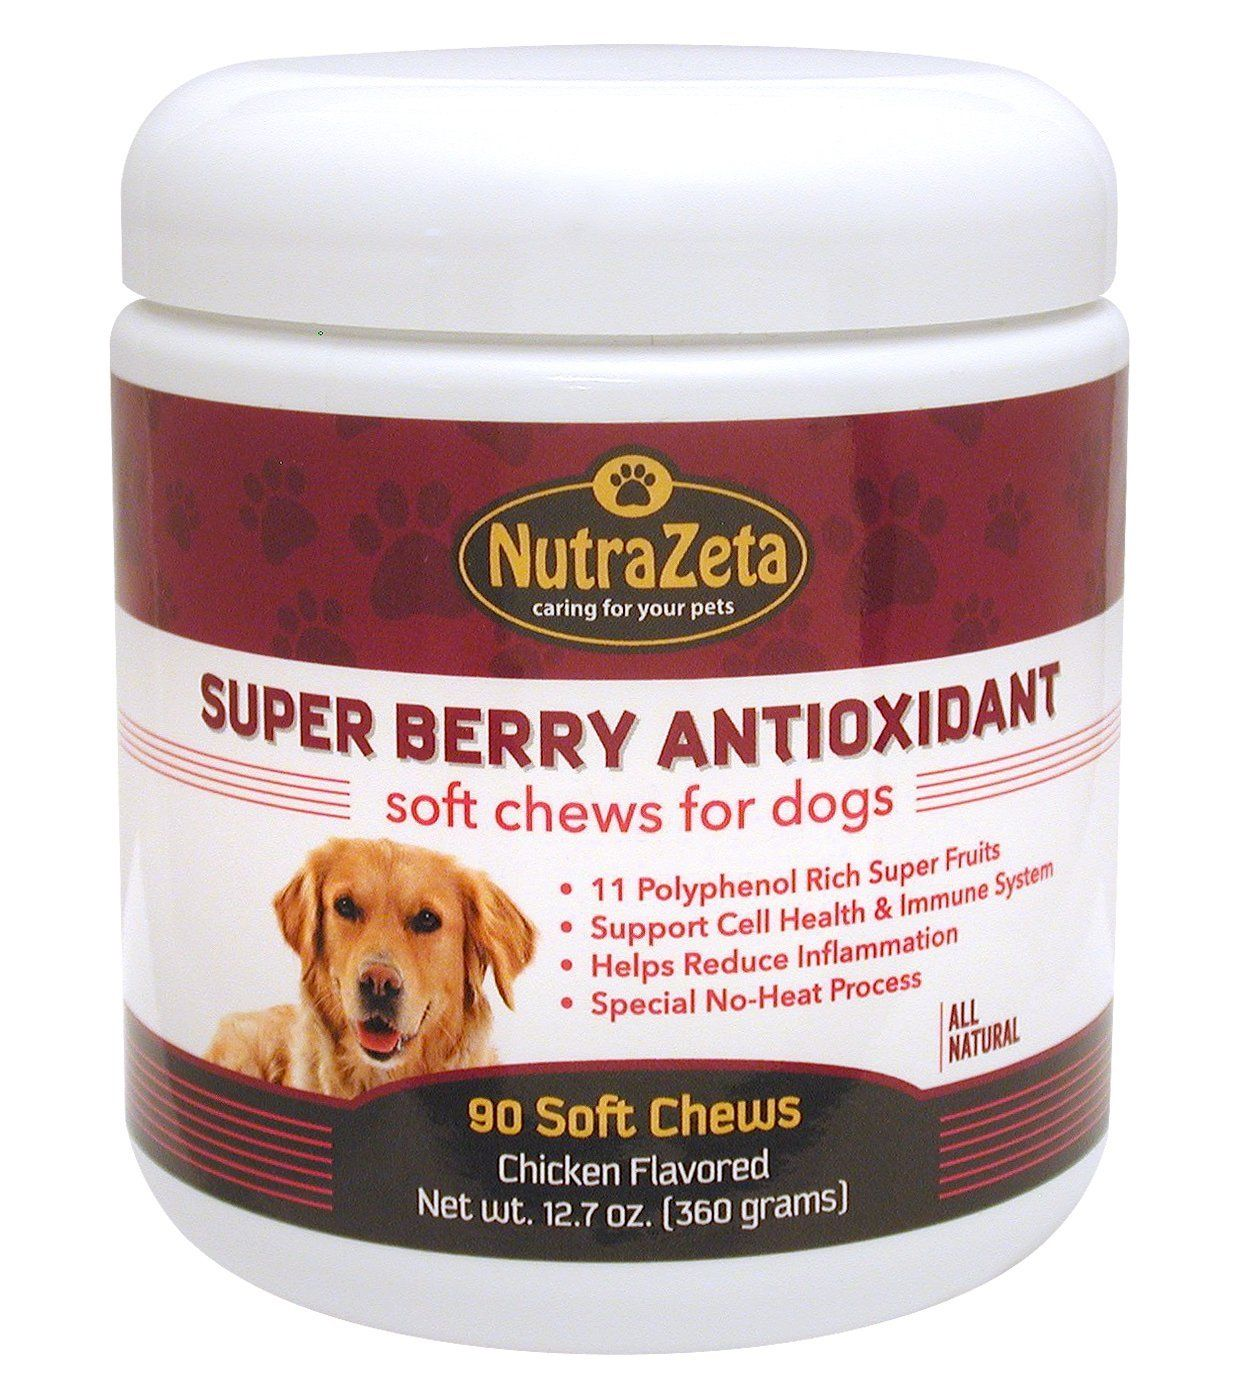 Super Rich Antioxidants for Dogs Long Life Health